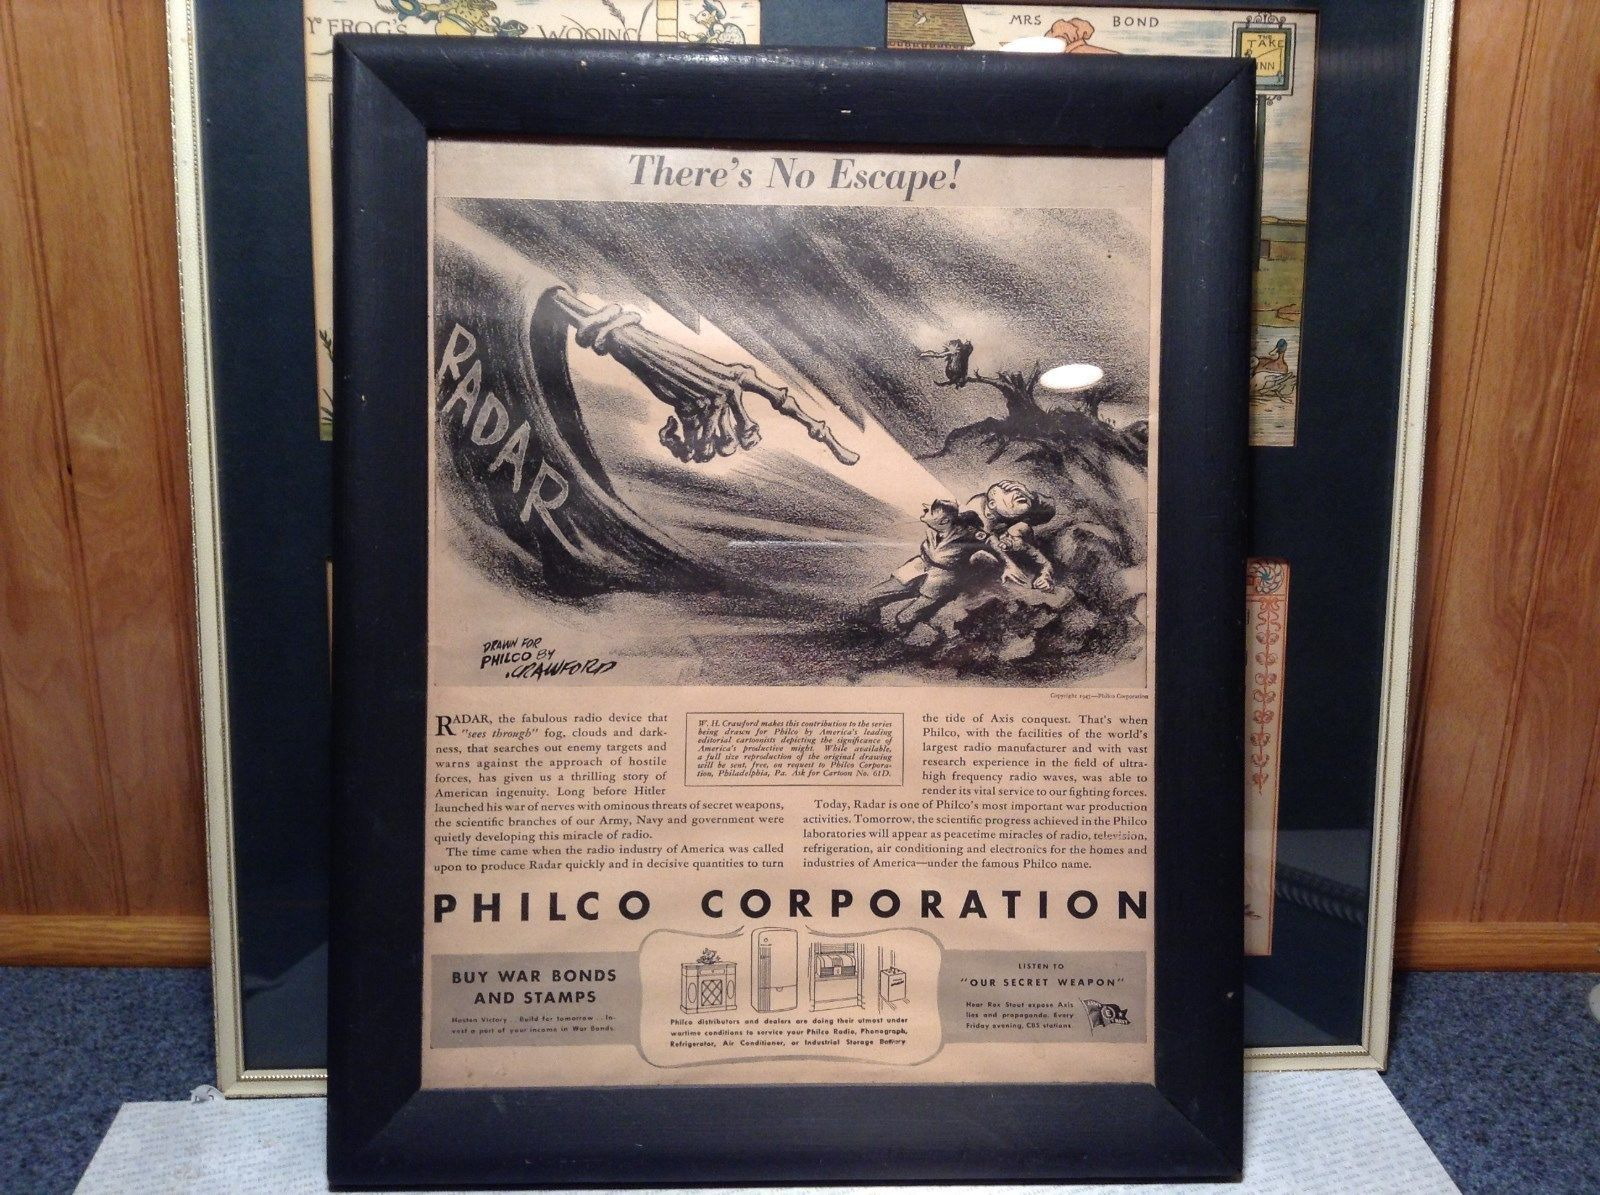 1943 WWII Newspaper Print Theres No Escape in Black Frame Philco Corporation